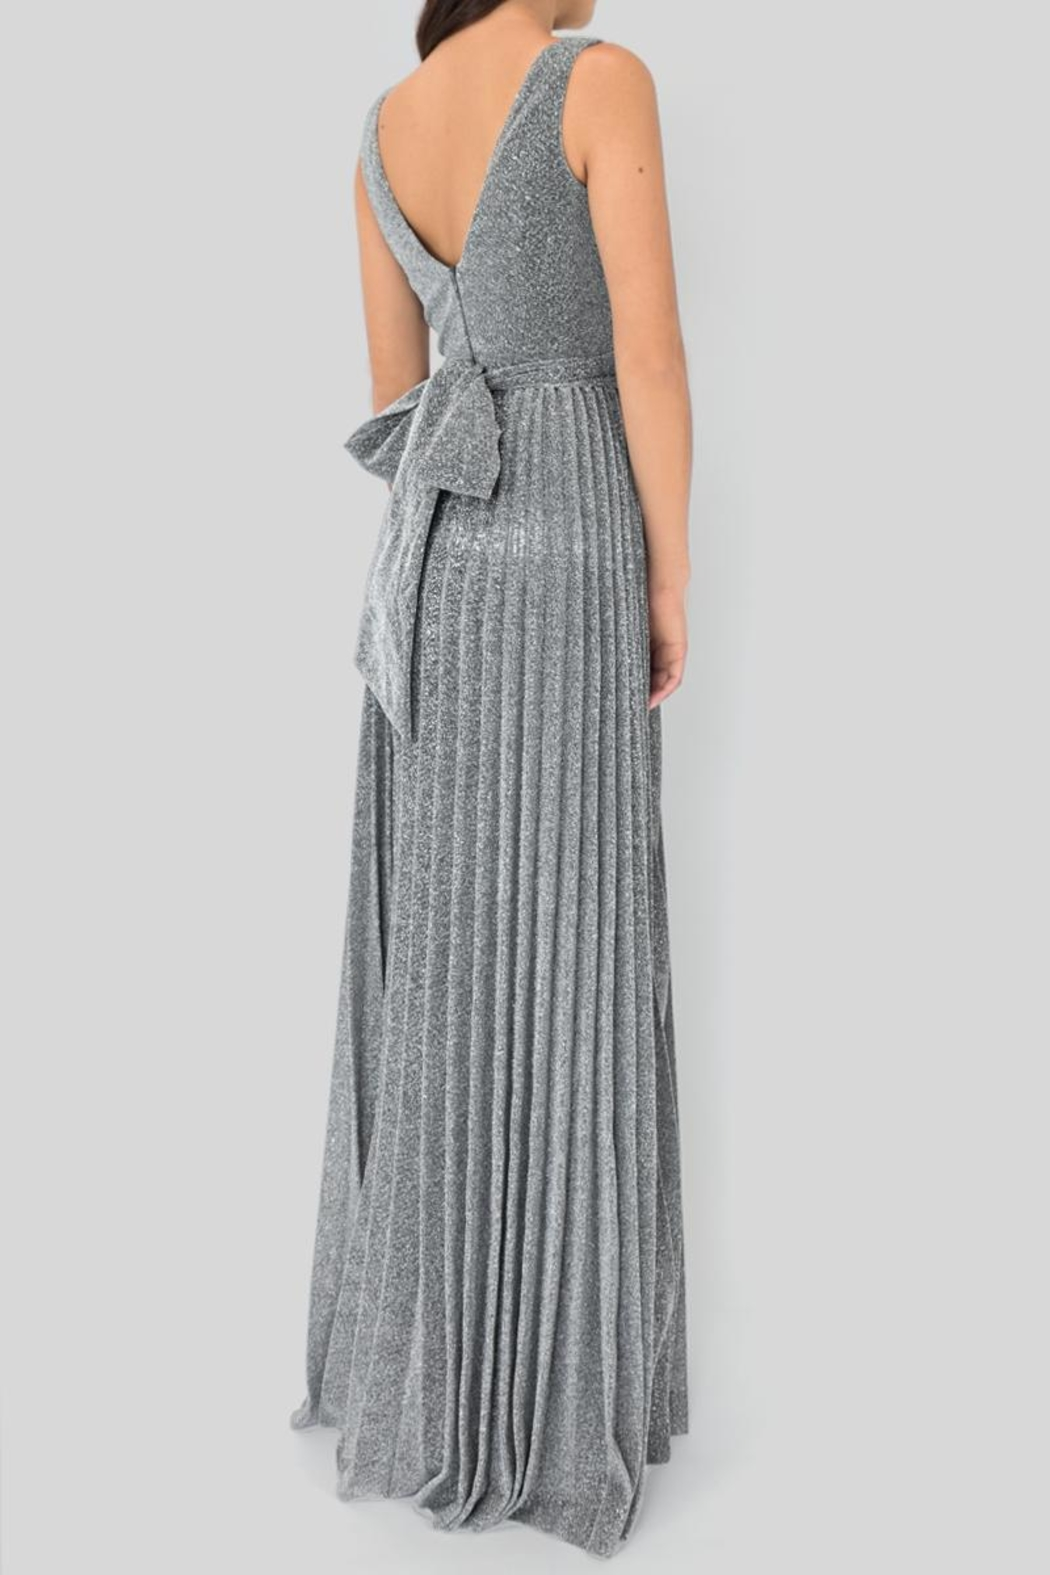 maniju Plated Silver Dress - Side Cropped Image